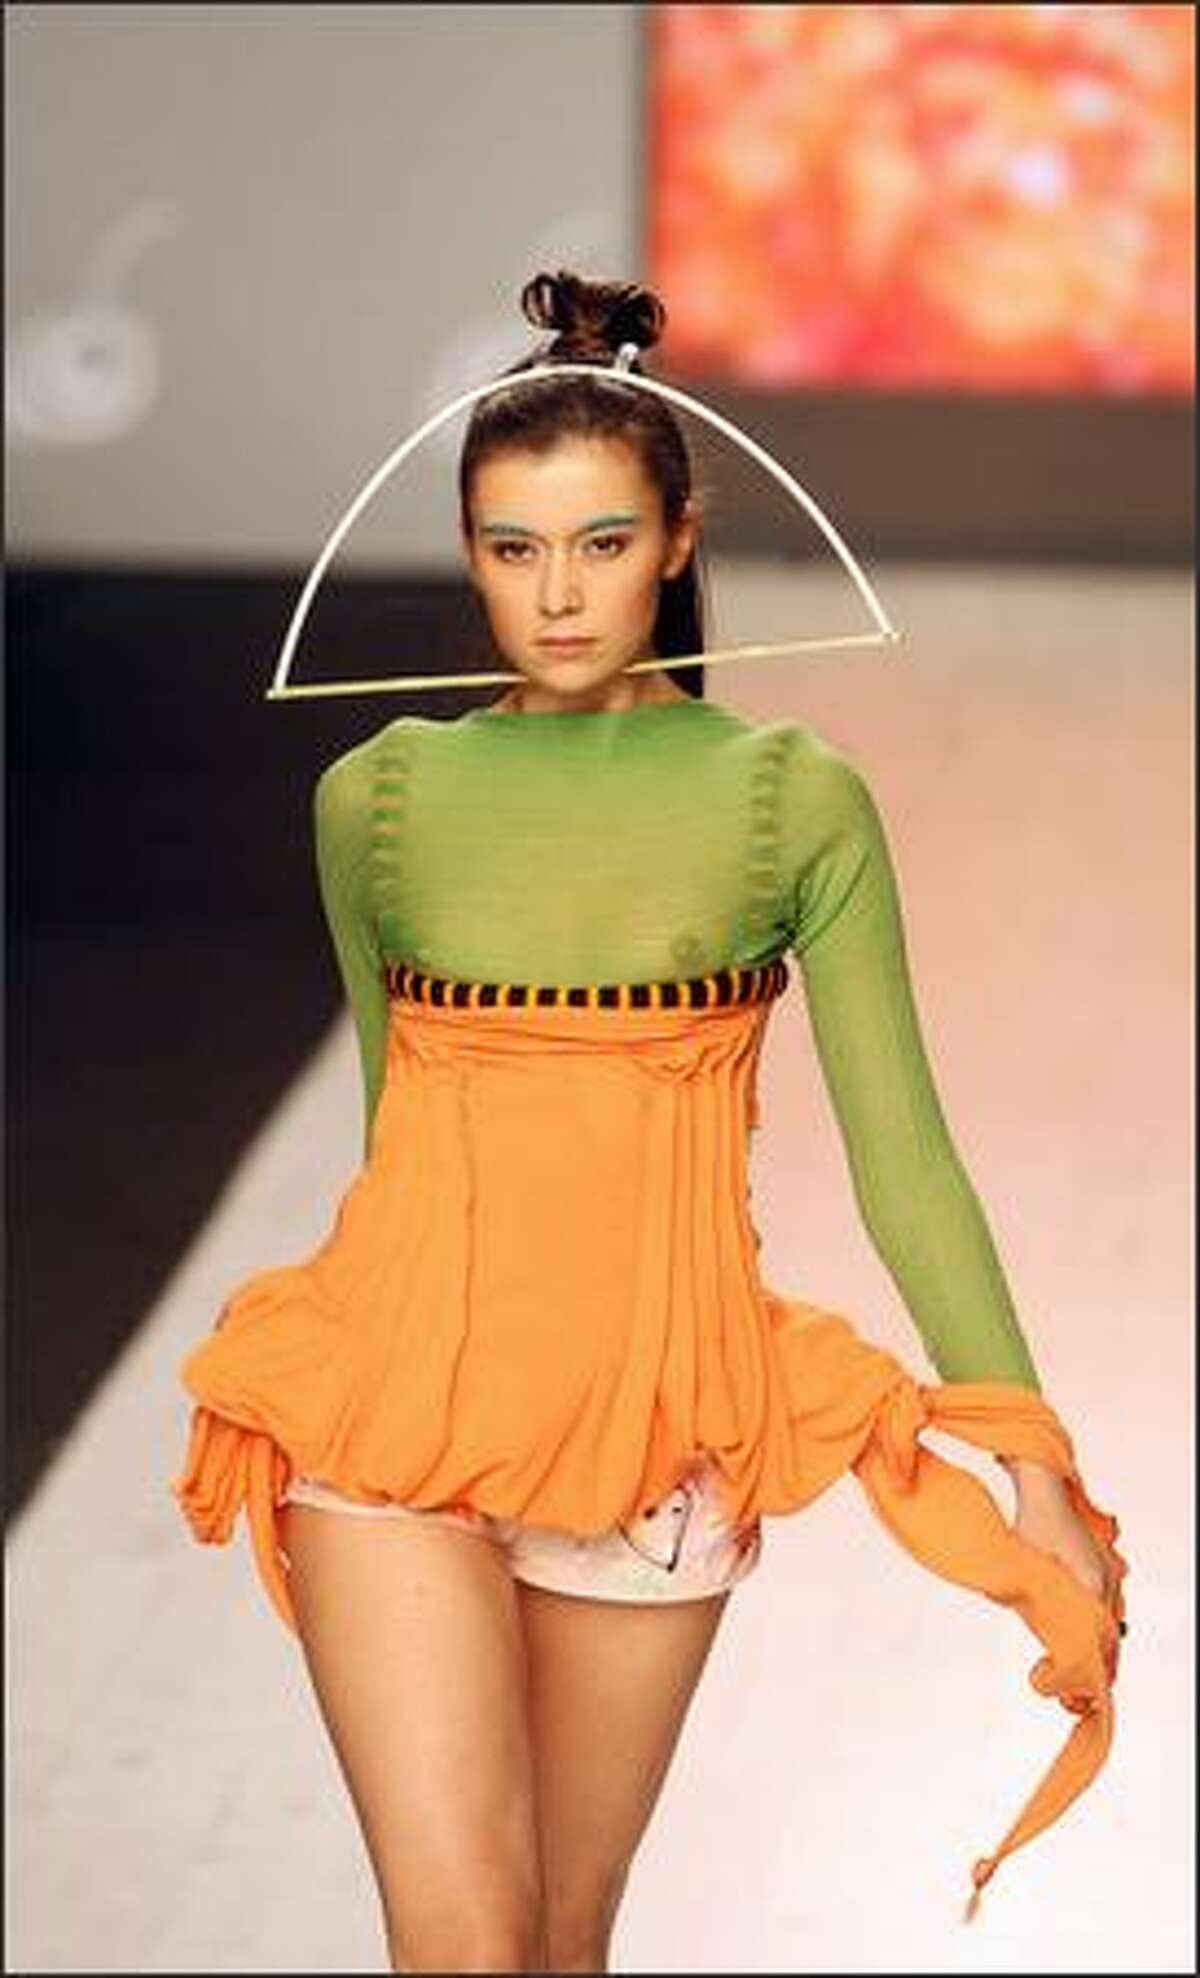 A model displays an outfit by popular fashion designer Elena Burenina as part of the Ready-to-Wear Spring-Summer 2008 collection during the Ukrainian Fashion Week in Kiev, 16 October 2007.